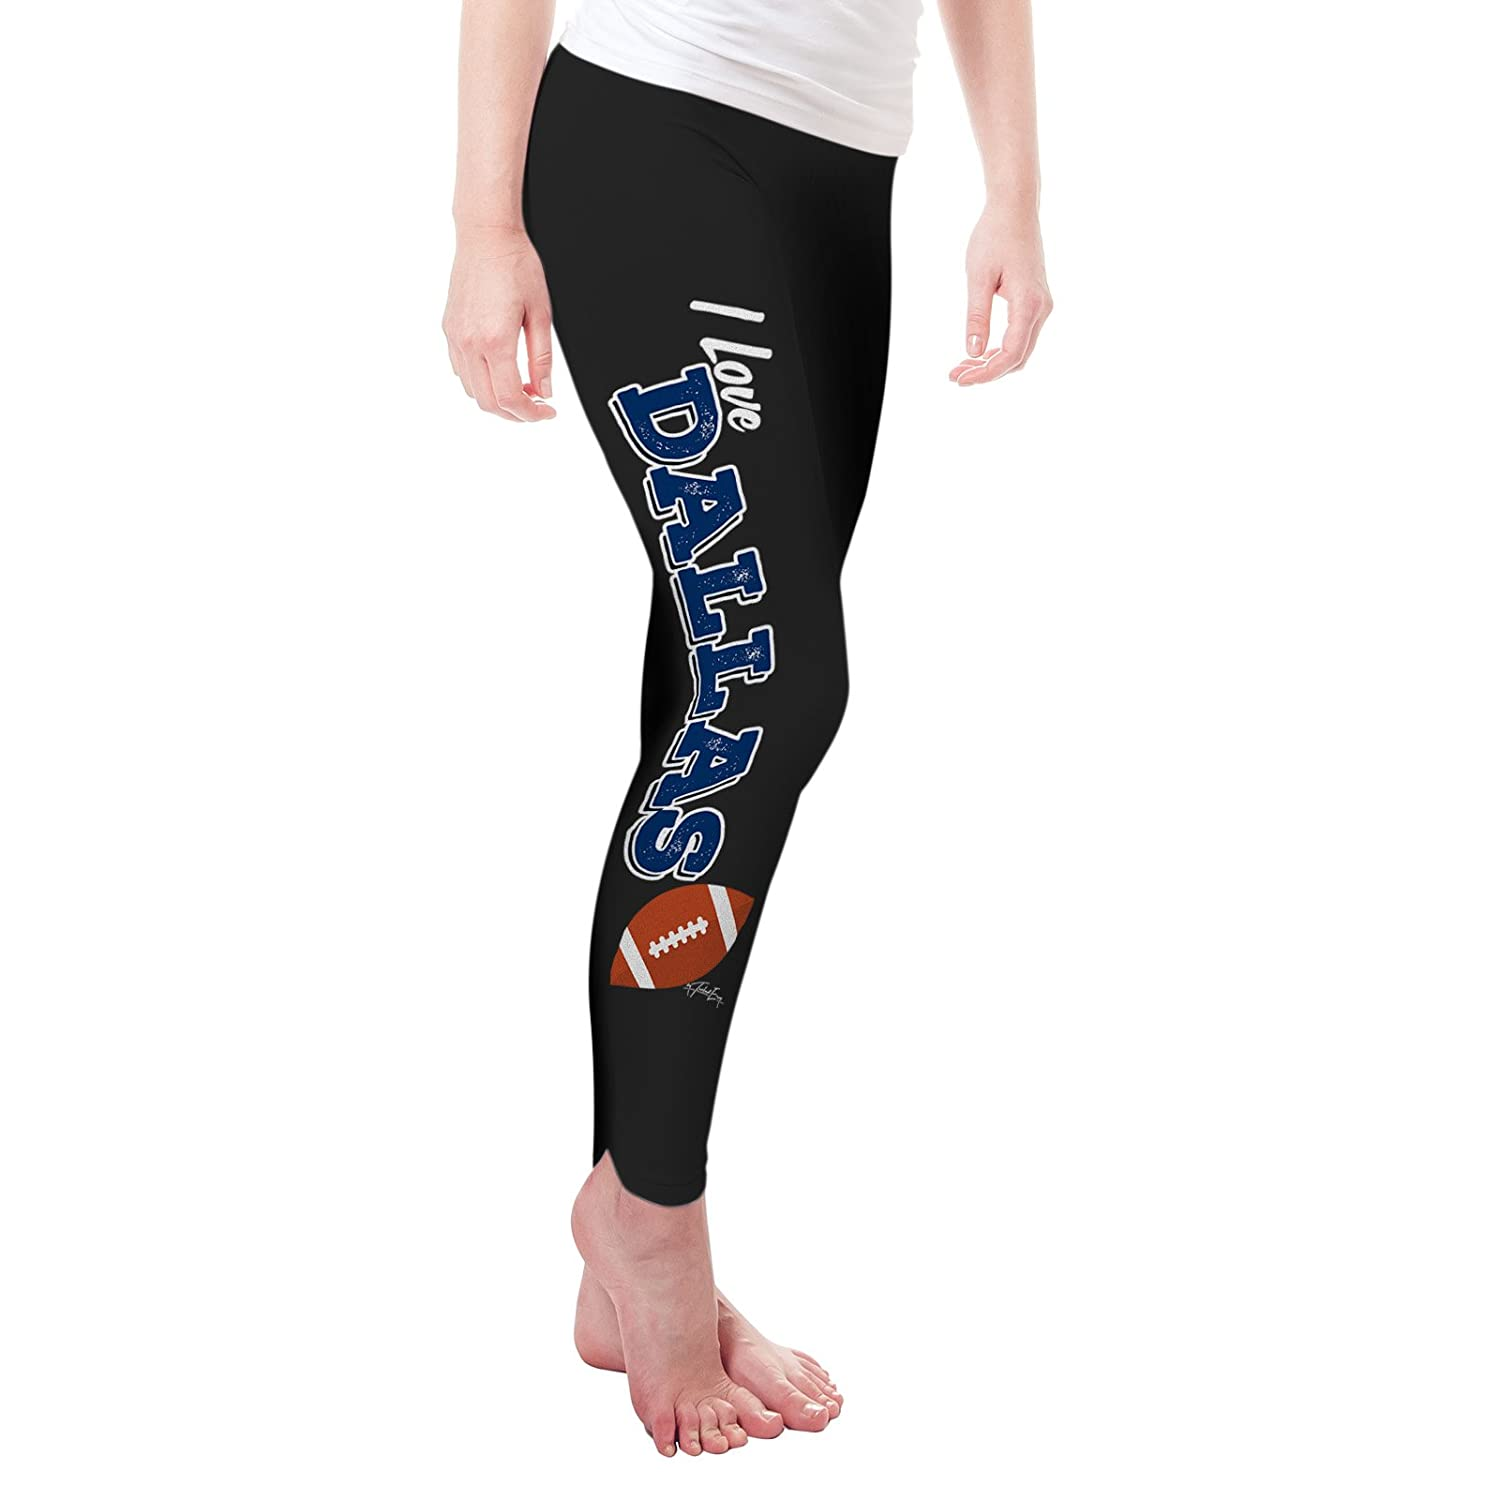 84dd81a14378b Uncompromised Premium Quality Cotton No Hassle Refund/Exchange Service  Wonderful Gifts For Every Occasion Our Leggings use the highest quality  material, ...